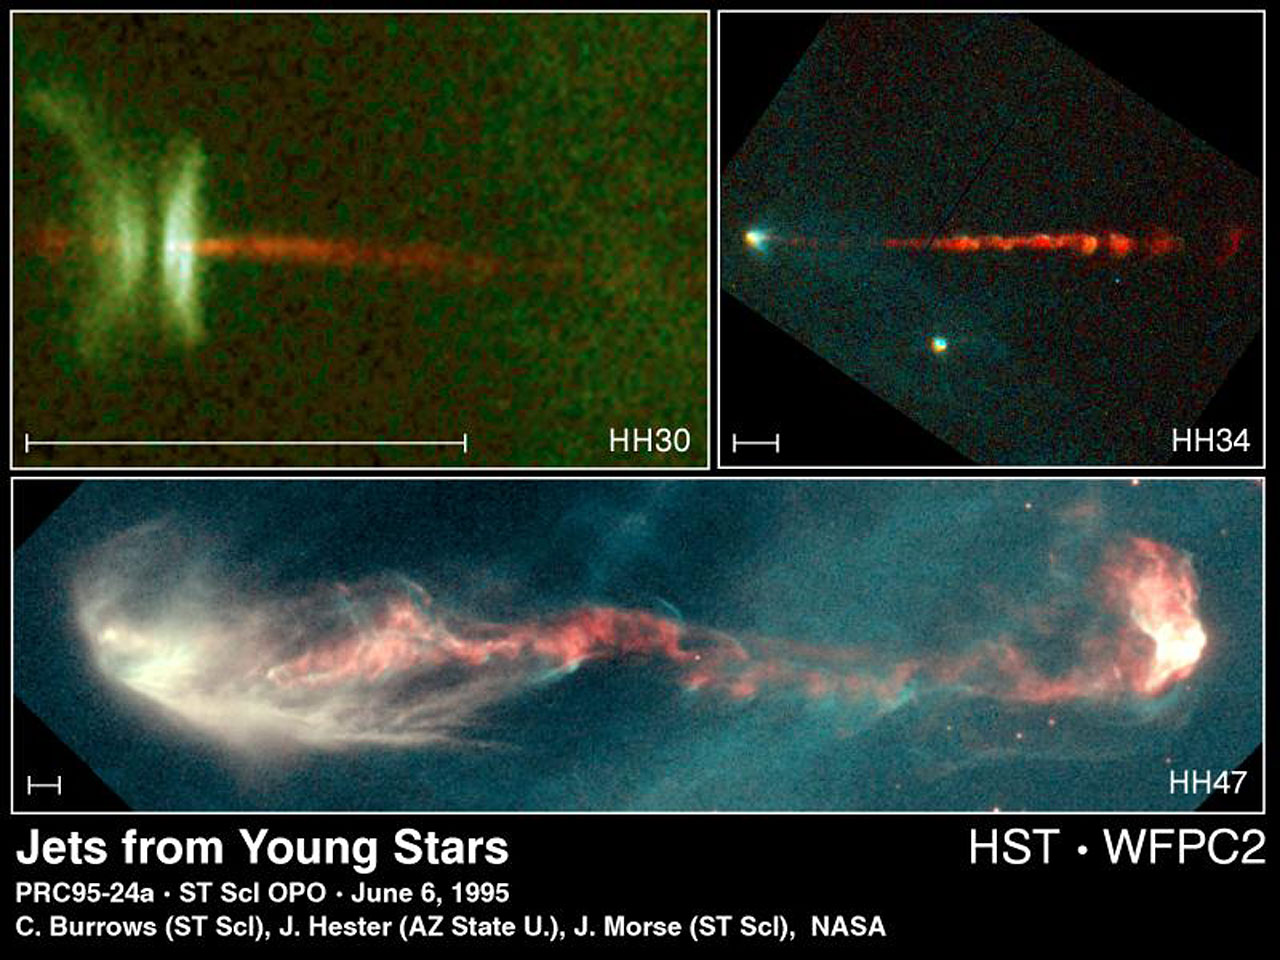 Jets from Young Stars